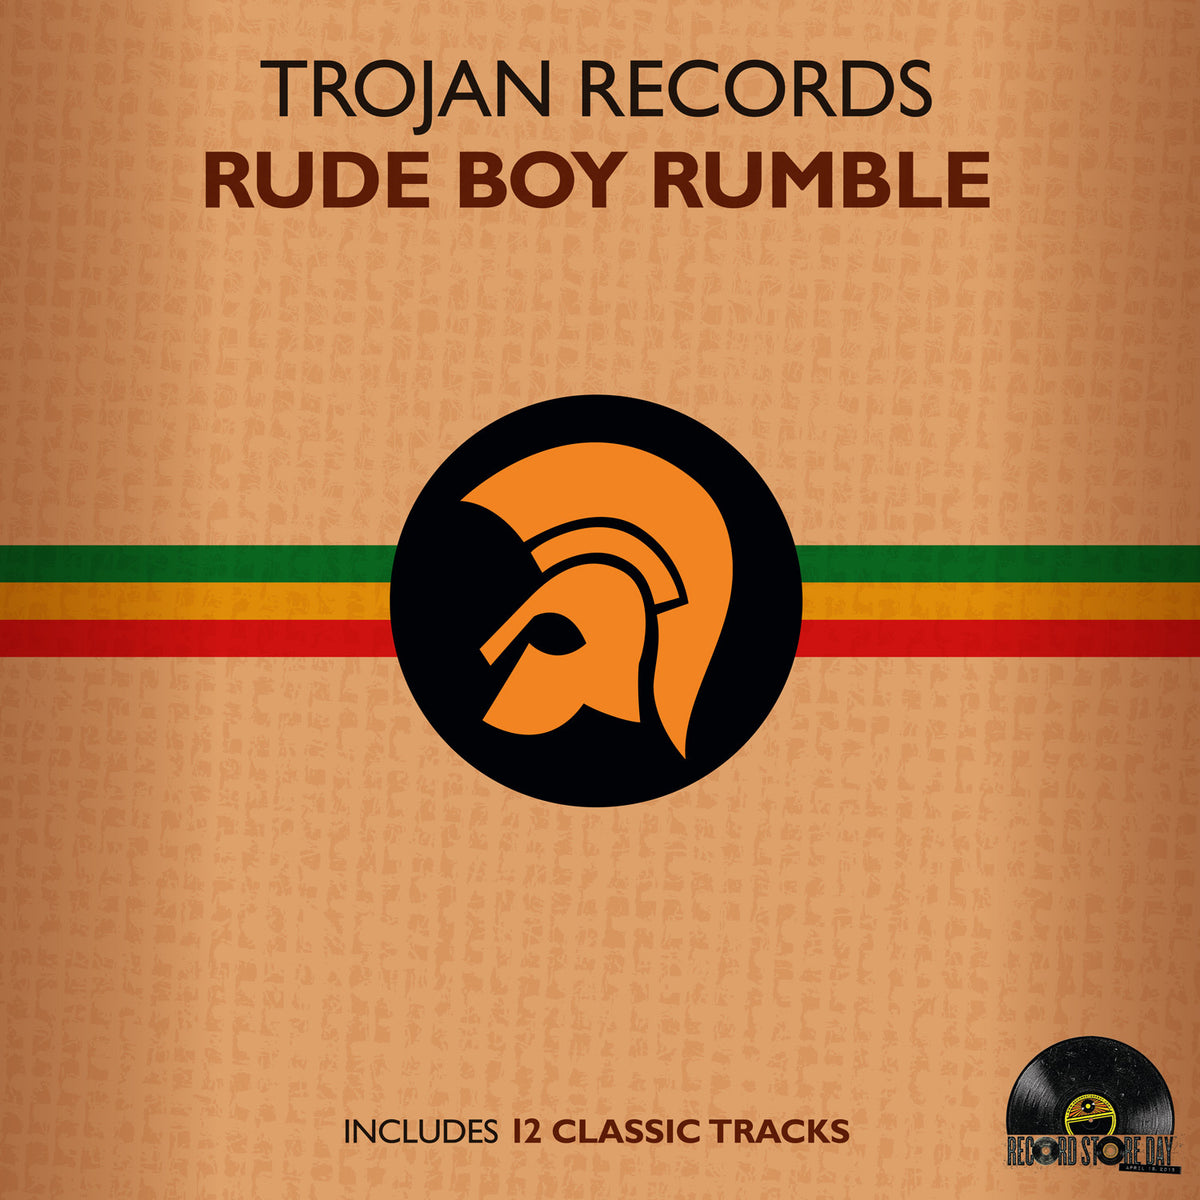 Trojan Records: Rude Boy Rumble Vinyl LP (Record Store Day)